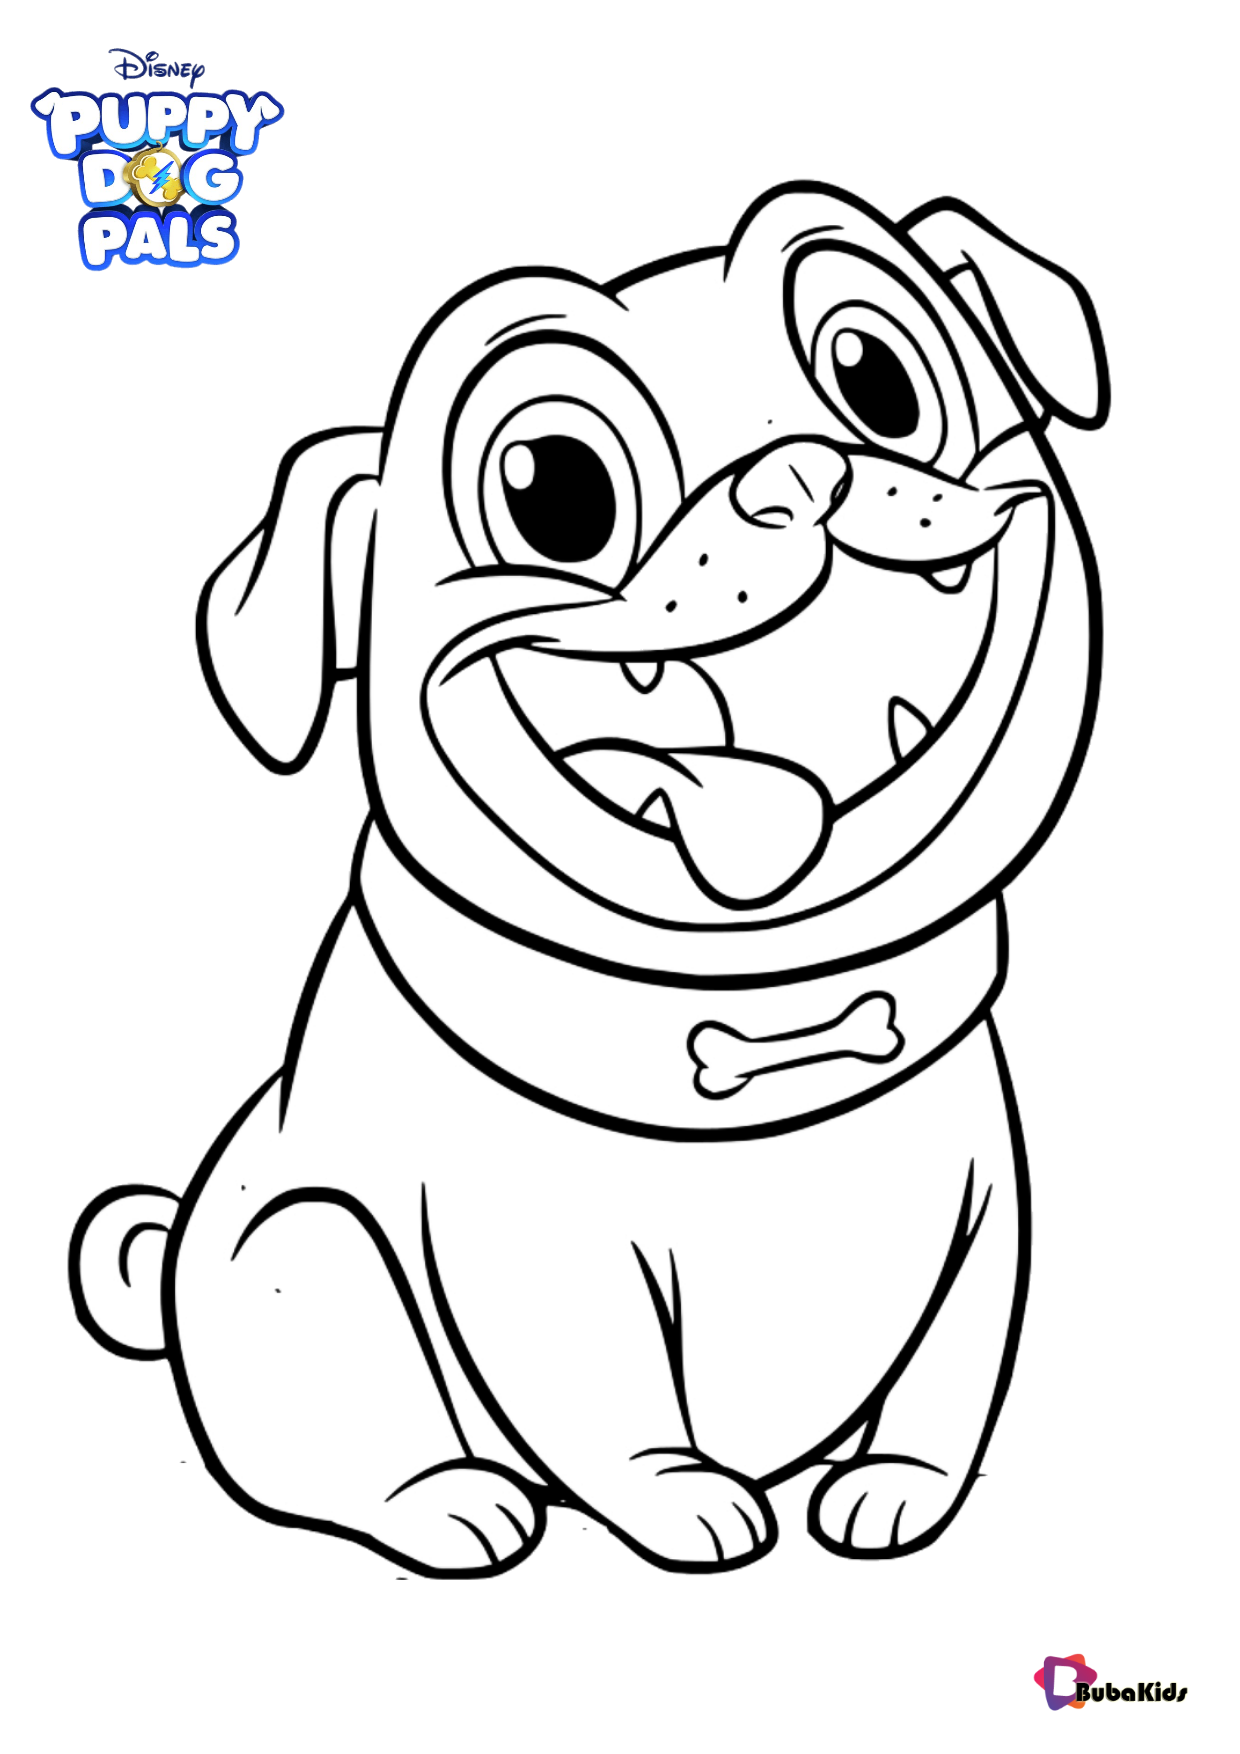 Rolly Puppy Dog Pals children television series coloring page Wallpaper